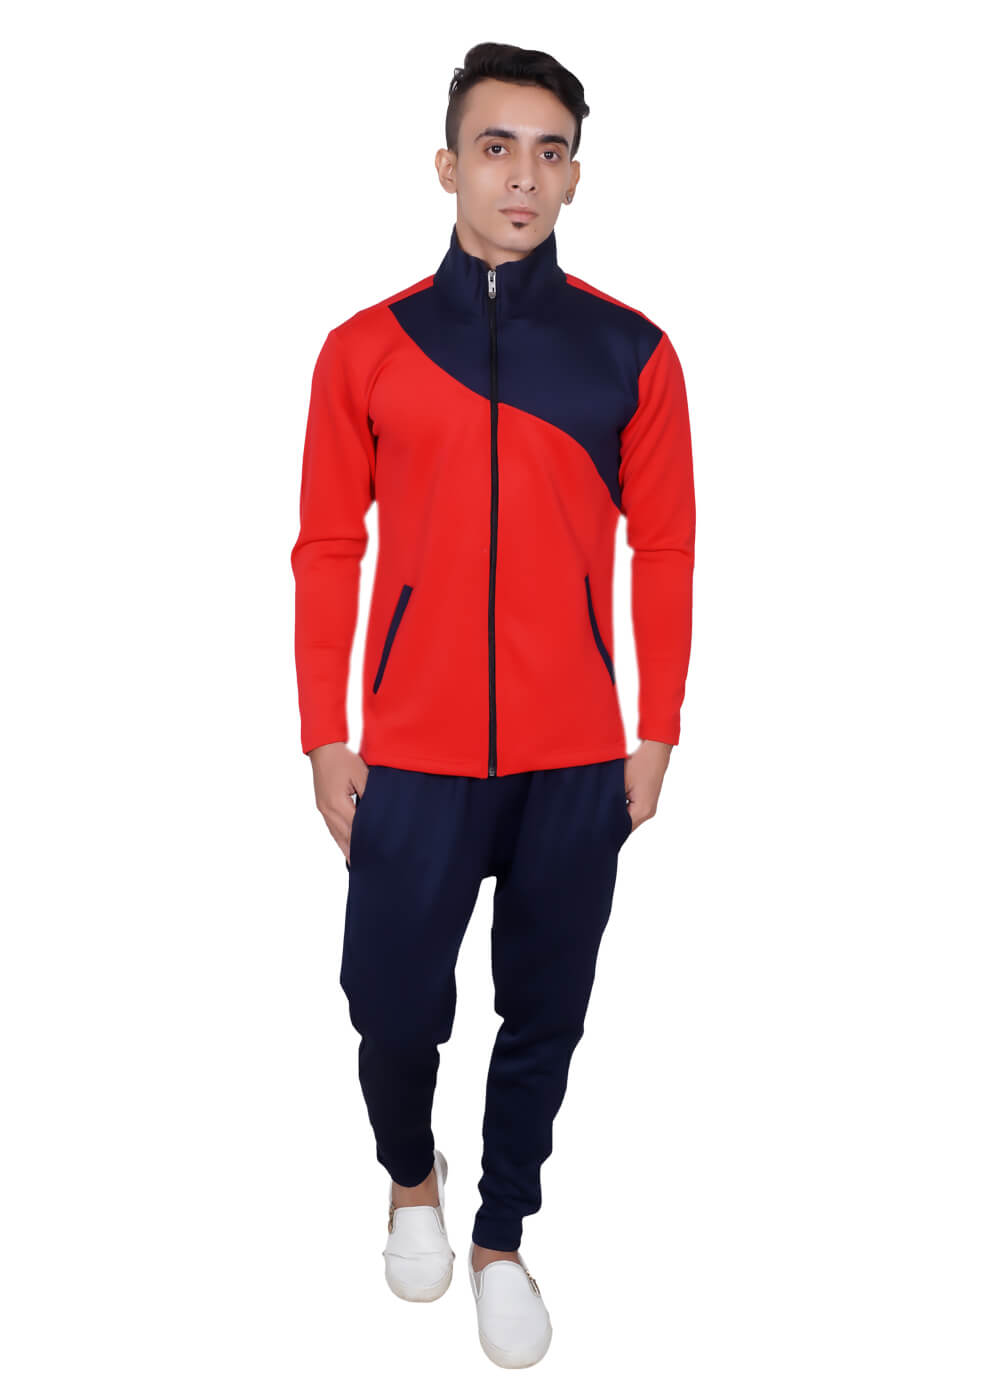 Cheap Tracksuits Manufacturers in Serbia